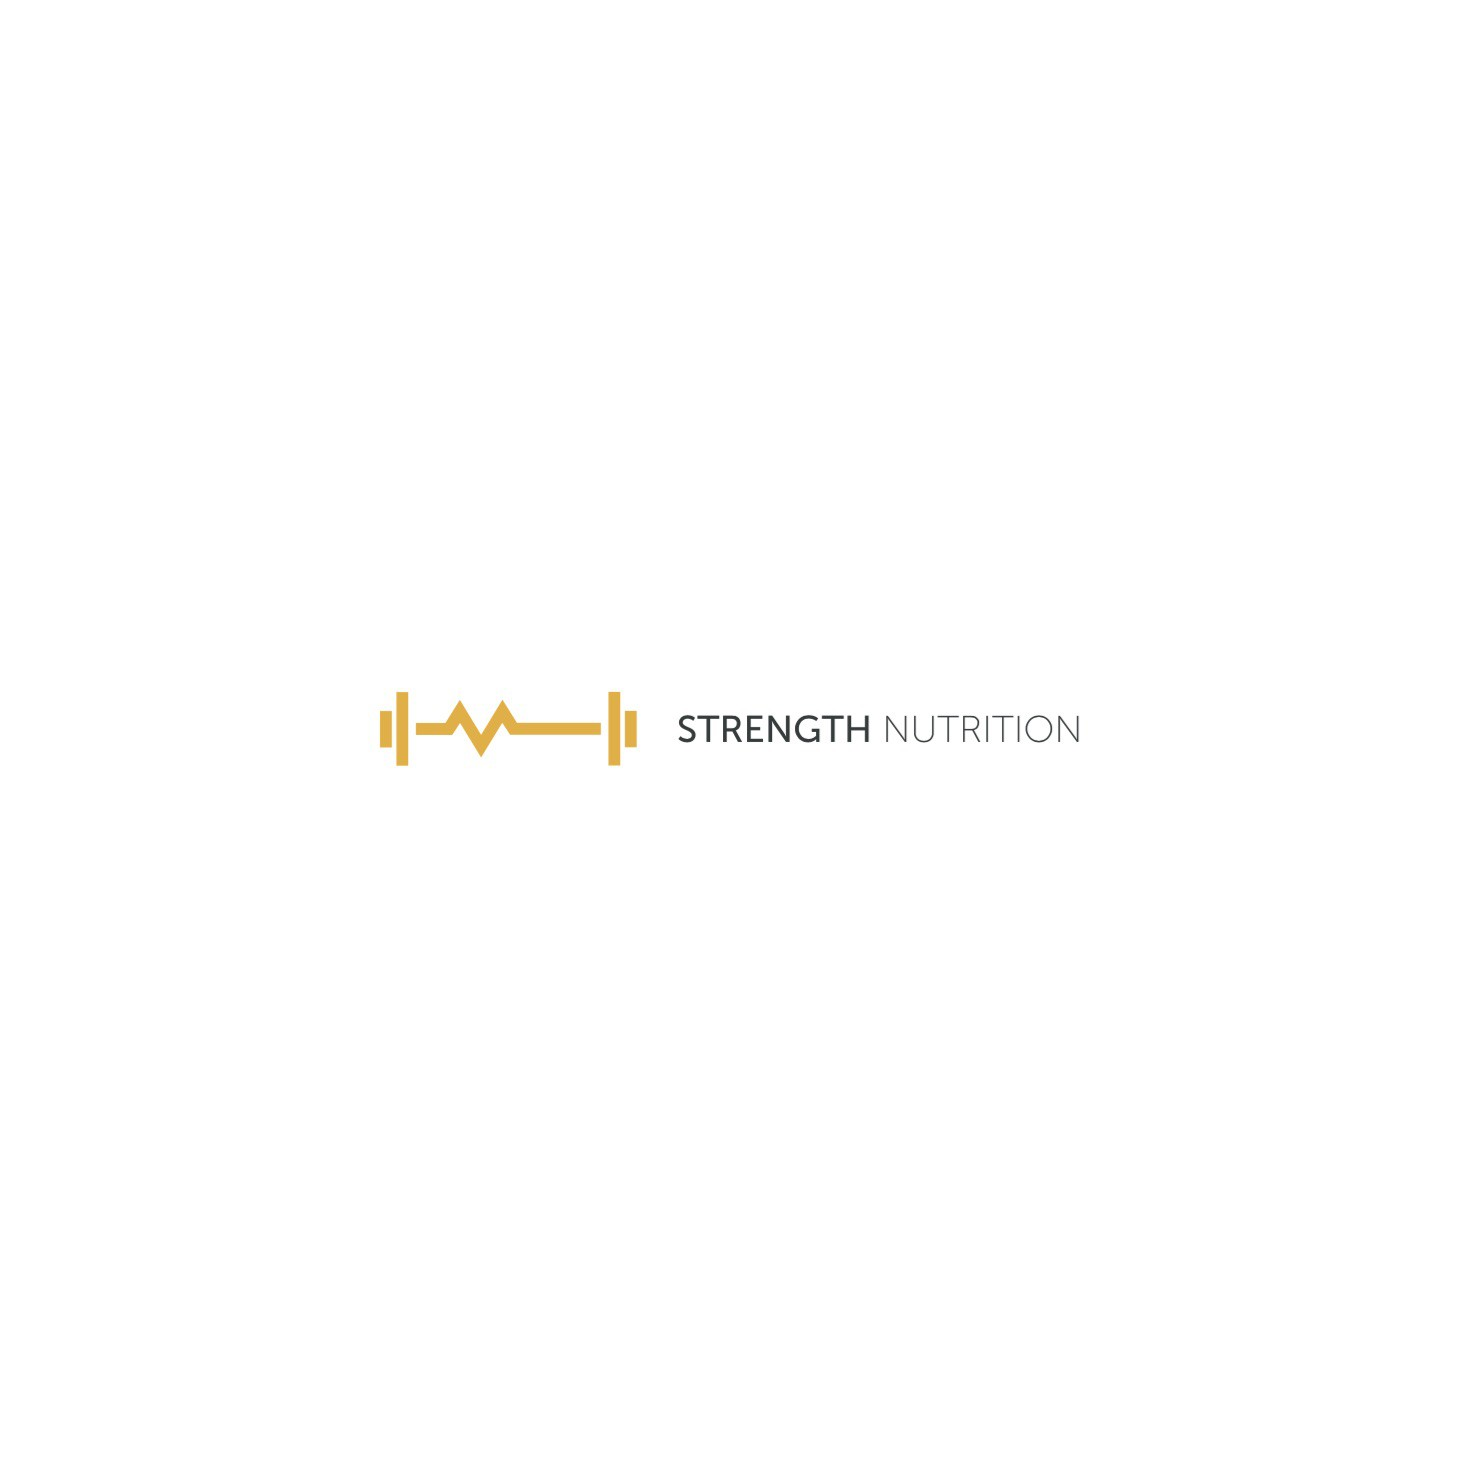 Designers needed for Strength Nutrition!